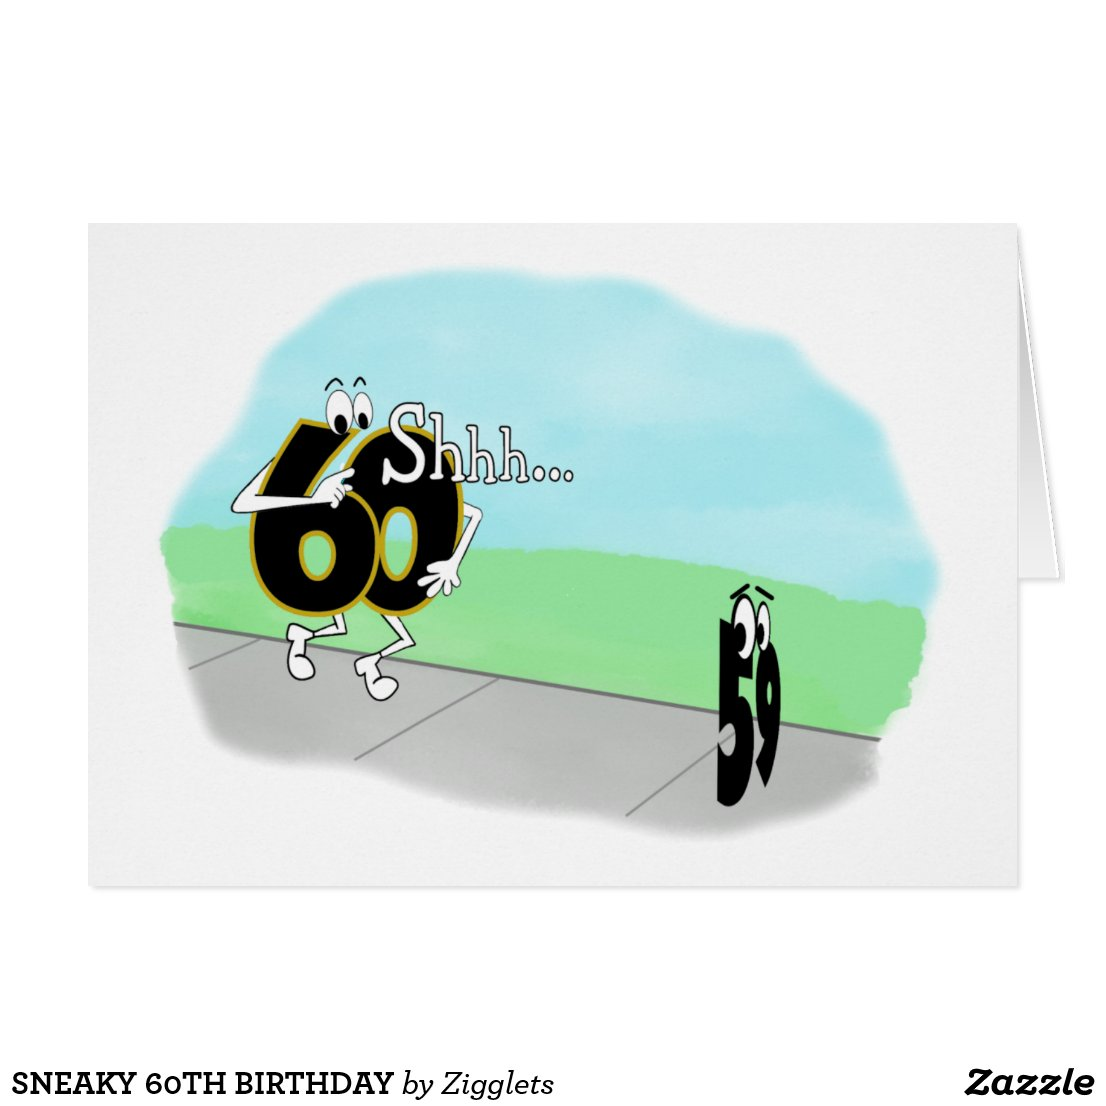 SNEAKY 60TH BIRTHDAY CARD